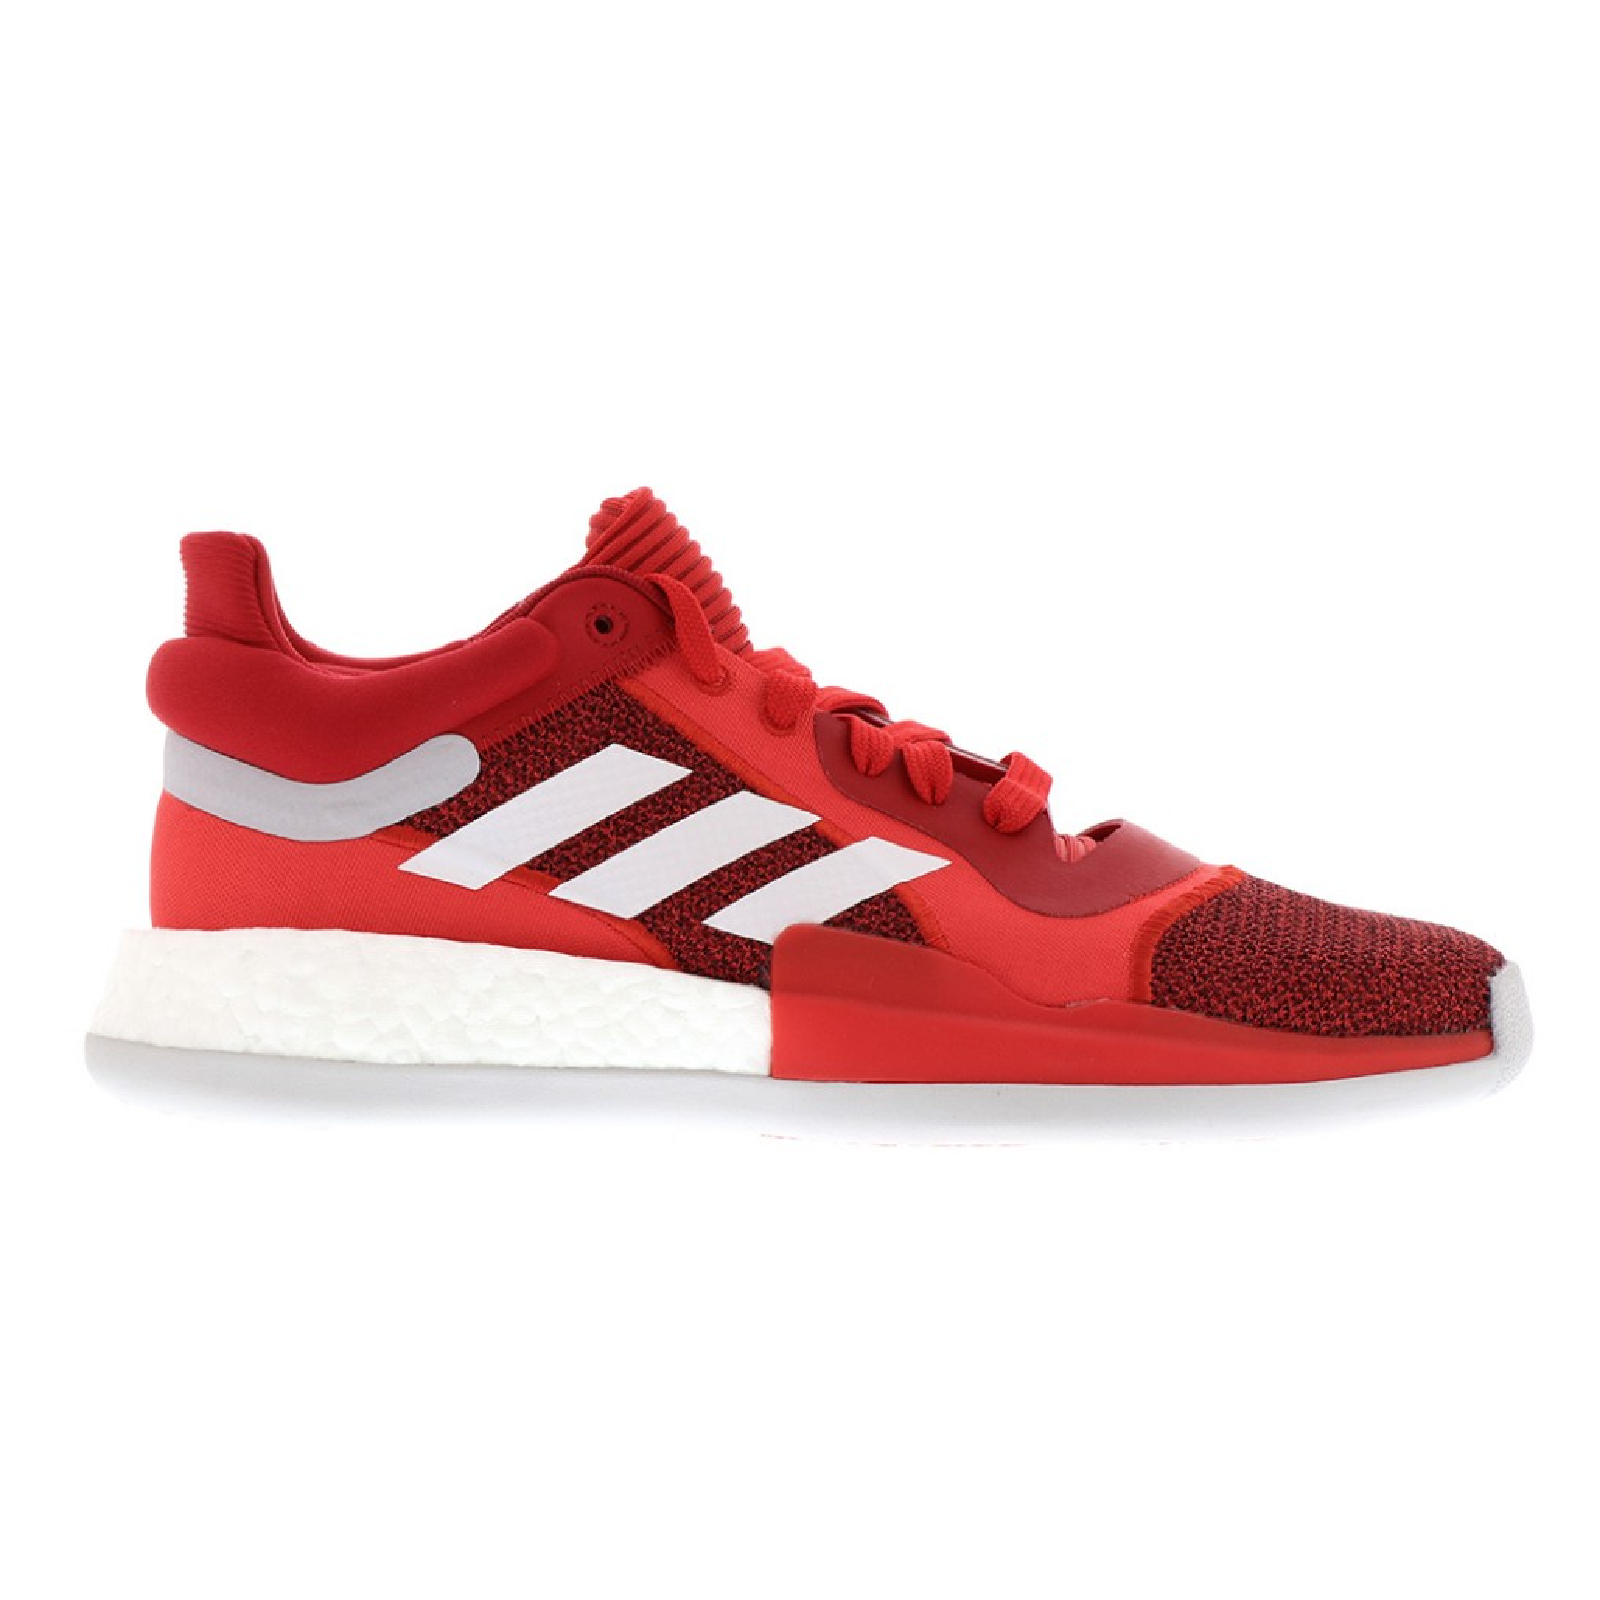 ADIDAS MARQUEE BOOST 40-51 NEU  indoor basketball ghost crazylight explosive